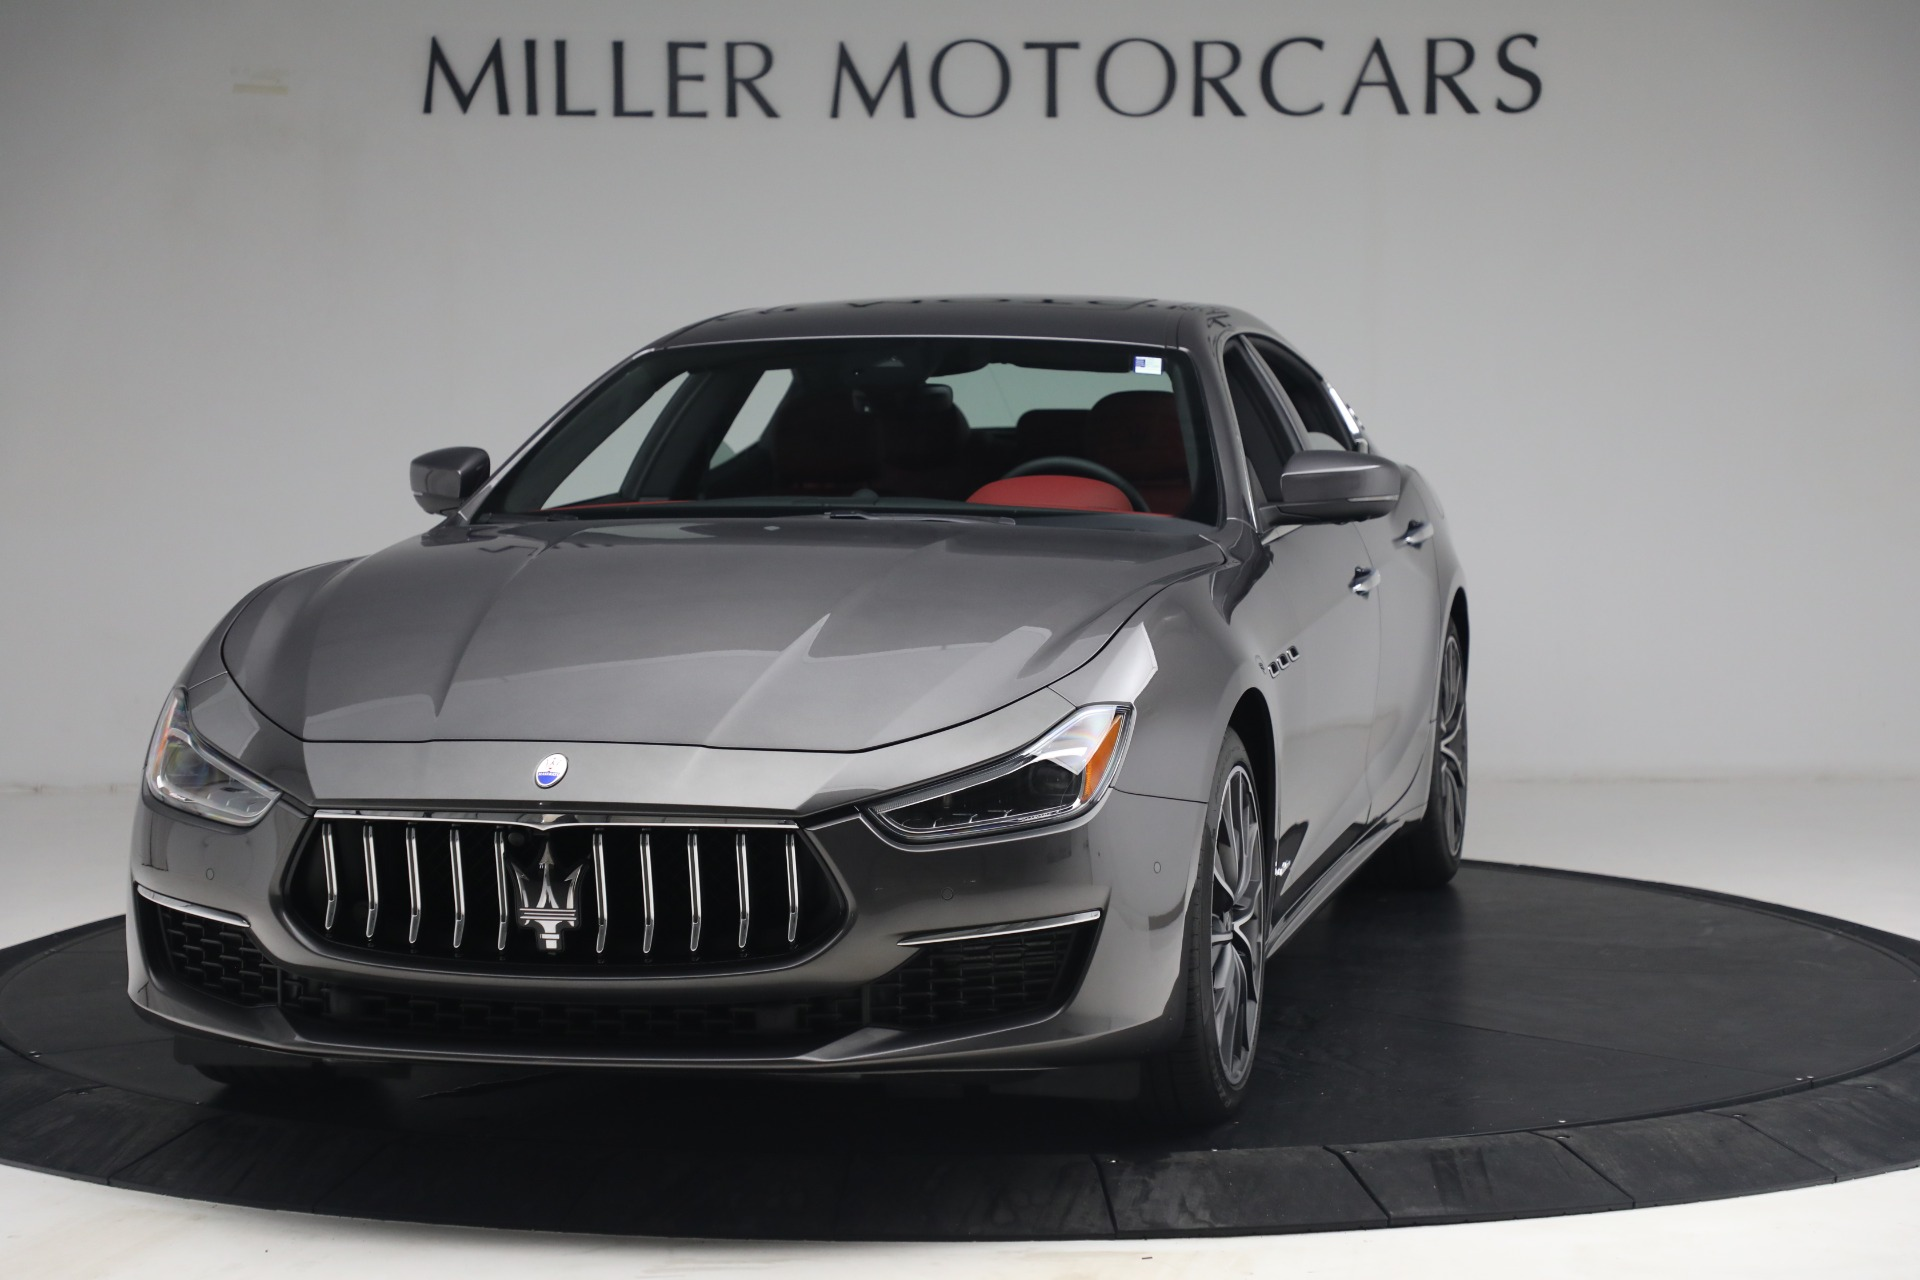 New 2021 Maserati Ghibli SQ4 GranLusso for sale Sold at Rolls-Royce Motor Cars Greenwich in Greenwich CT 06830 1